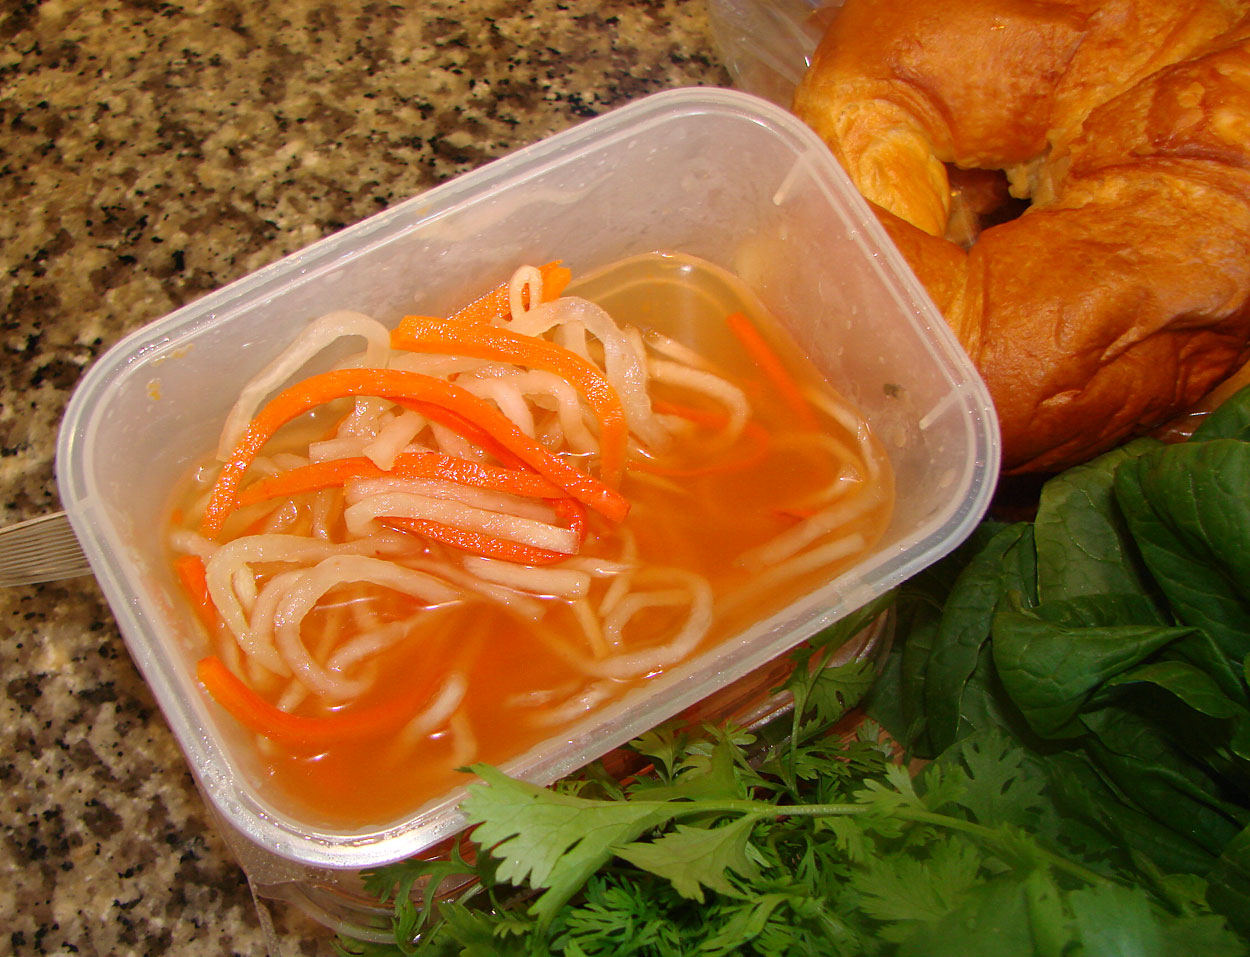 ... Banh Mi, which are the pickled Daikon and Carrots called 'Do Chua